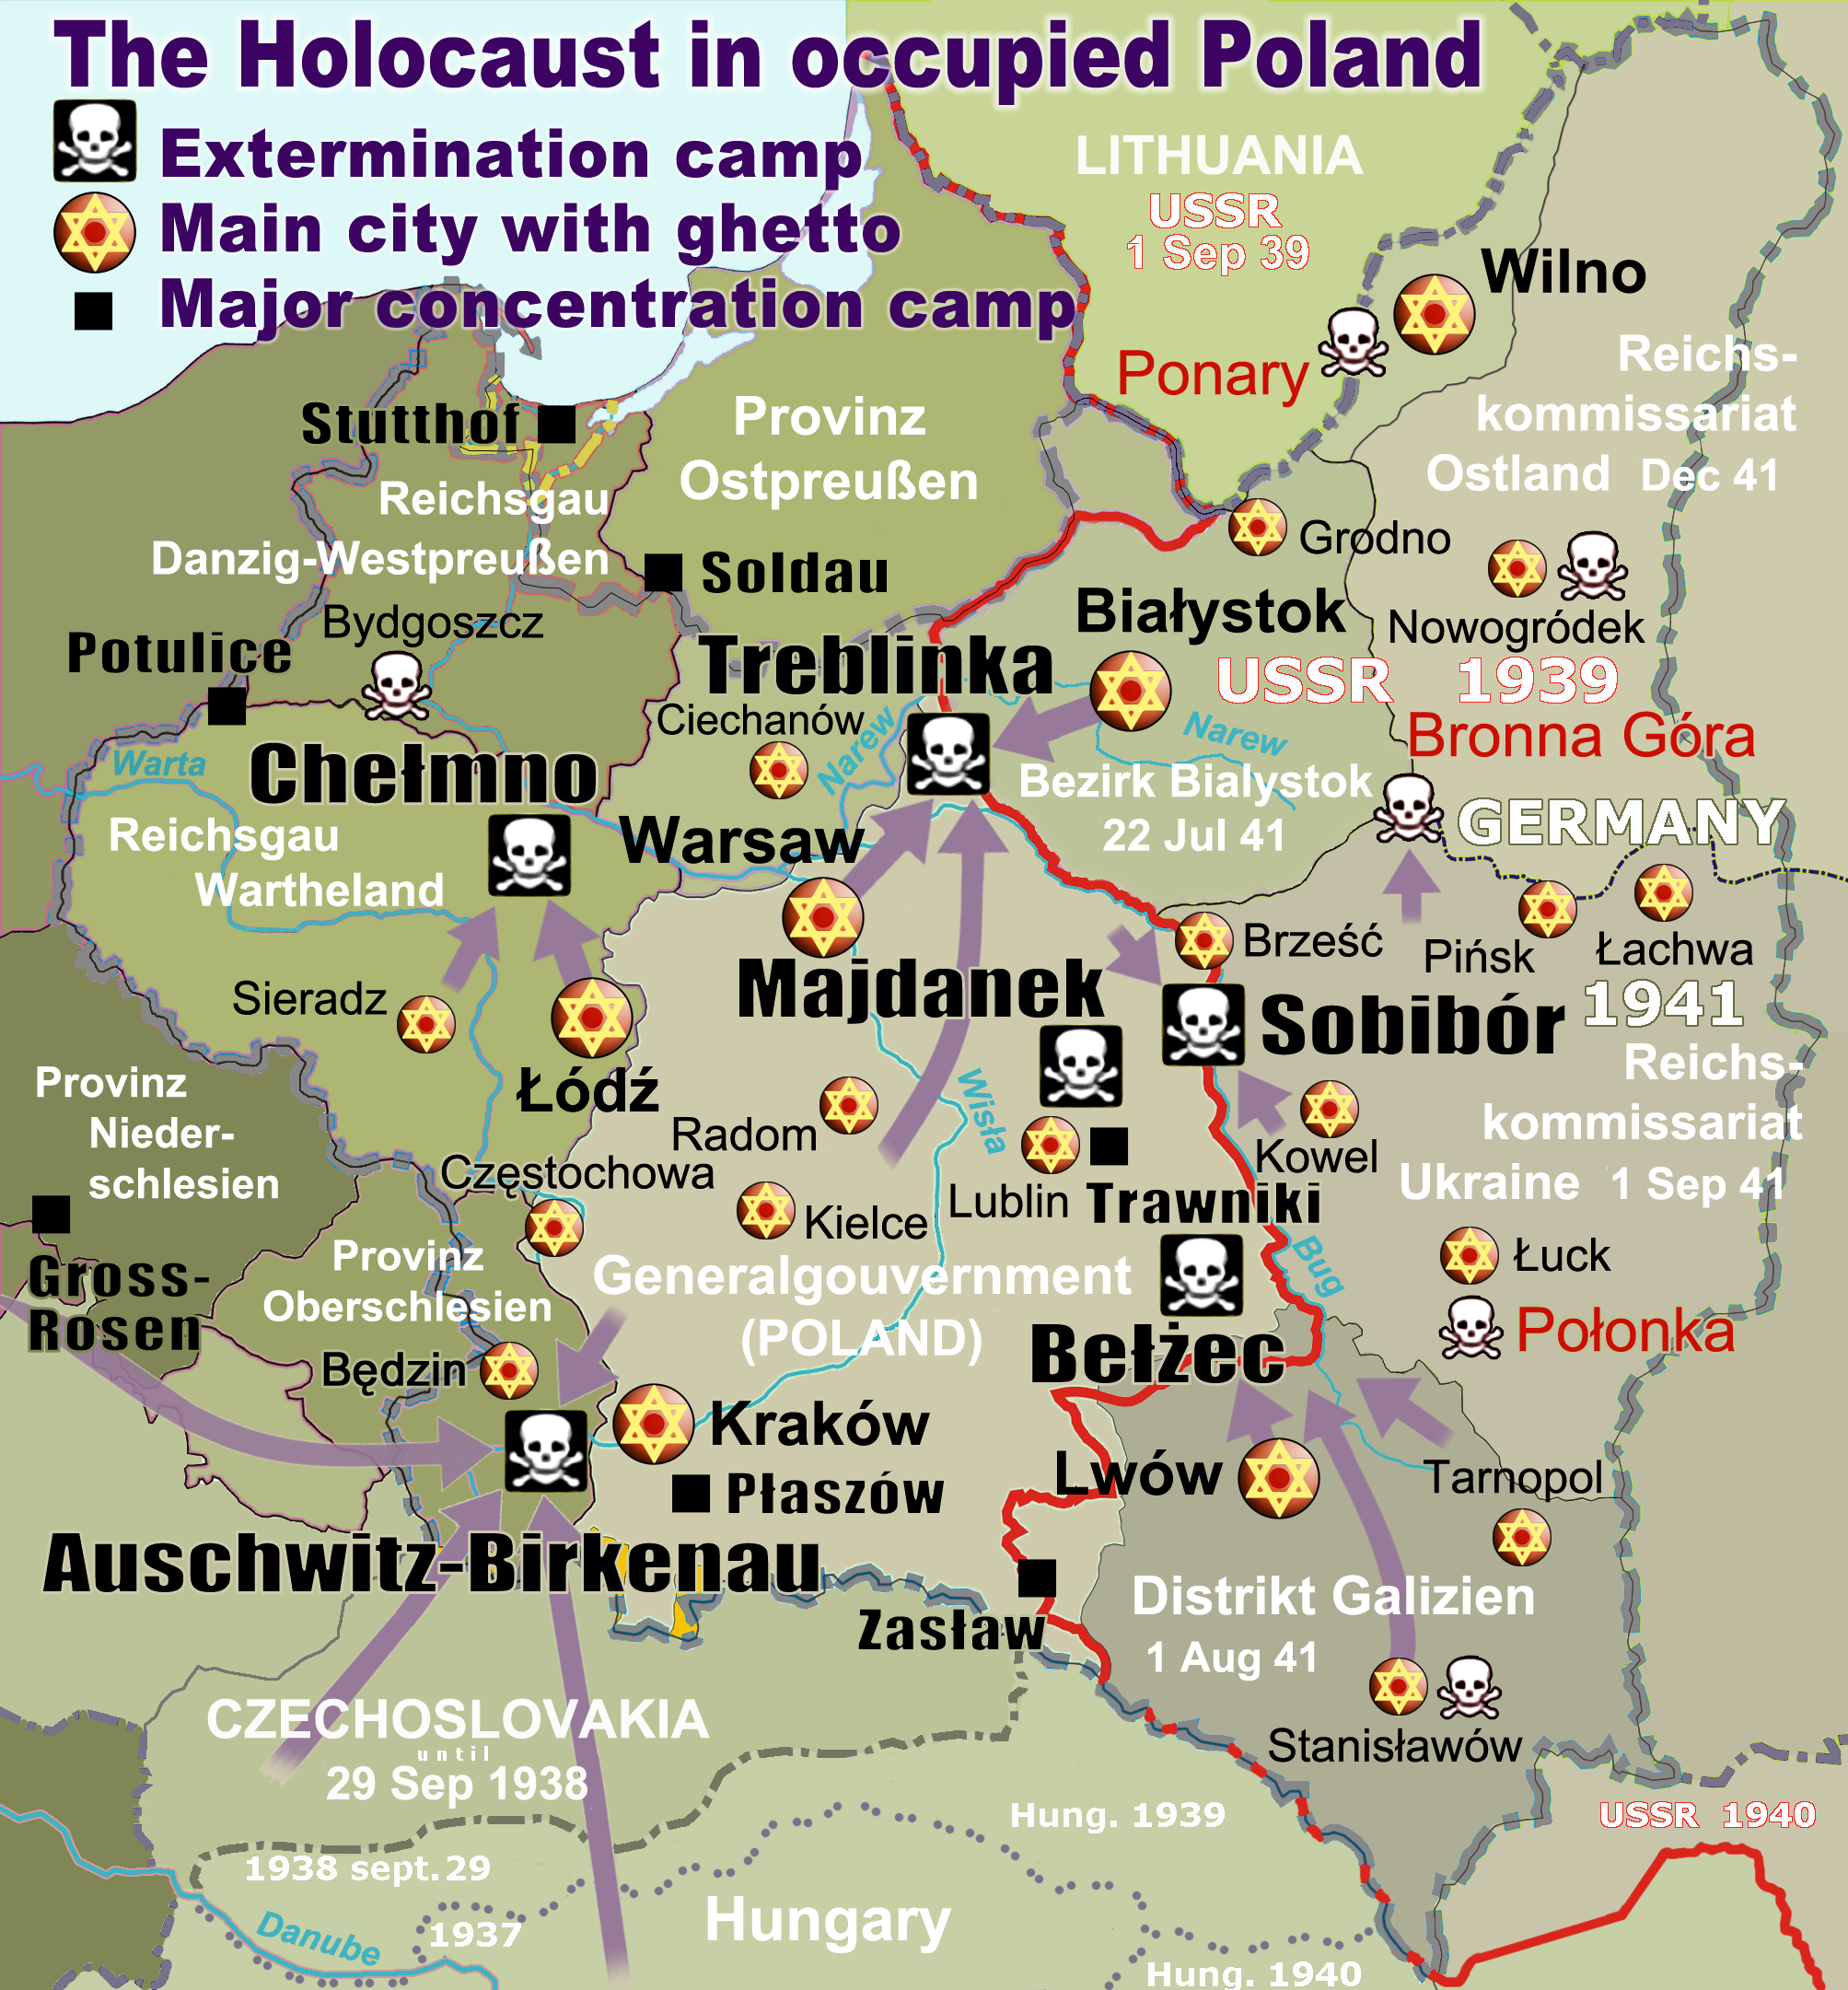 external image WW2-Holocaust-Poland.PNG